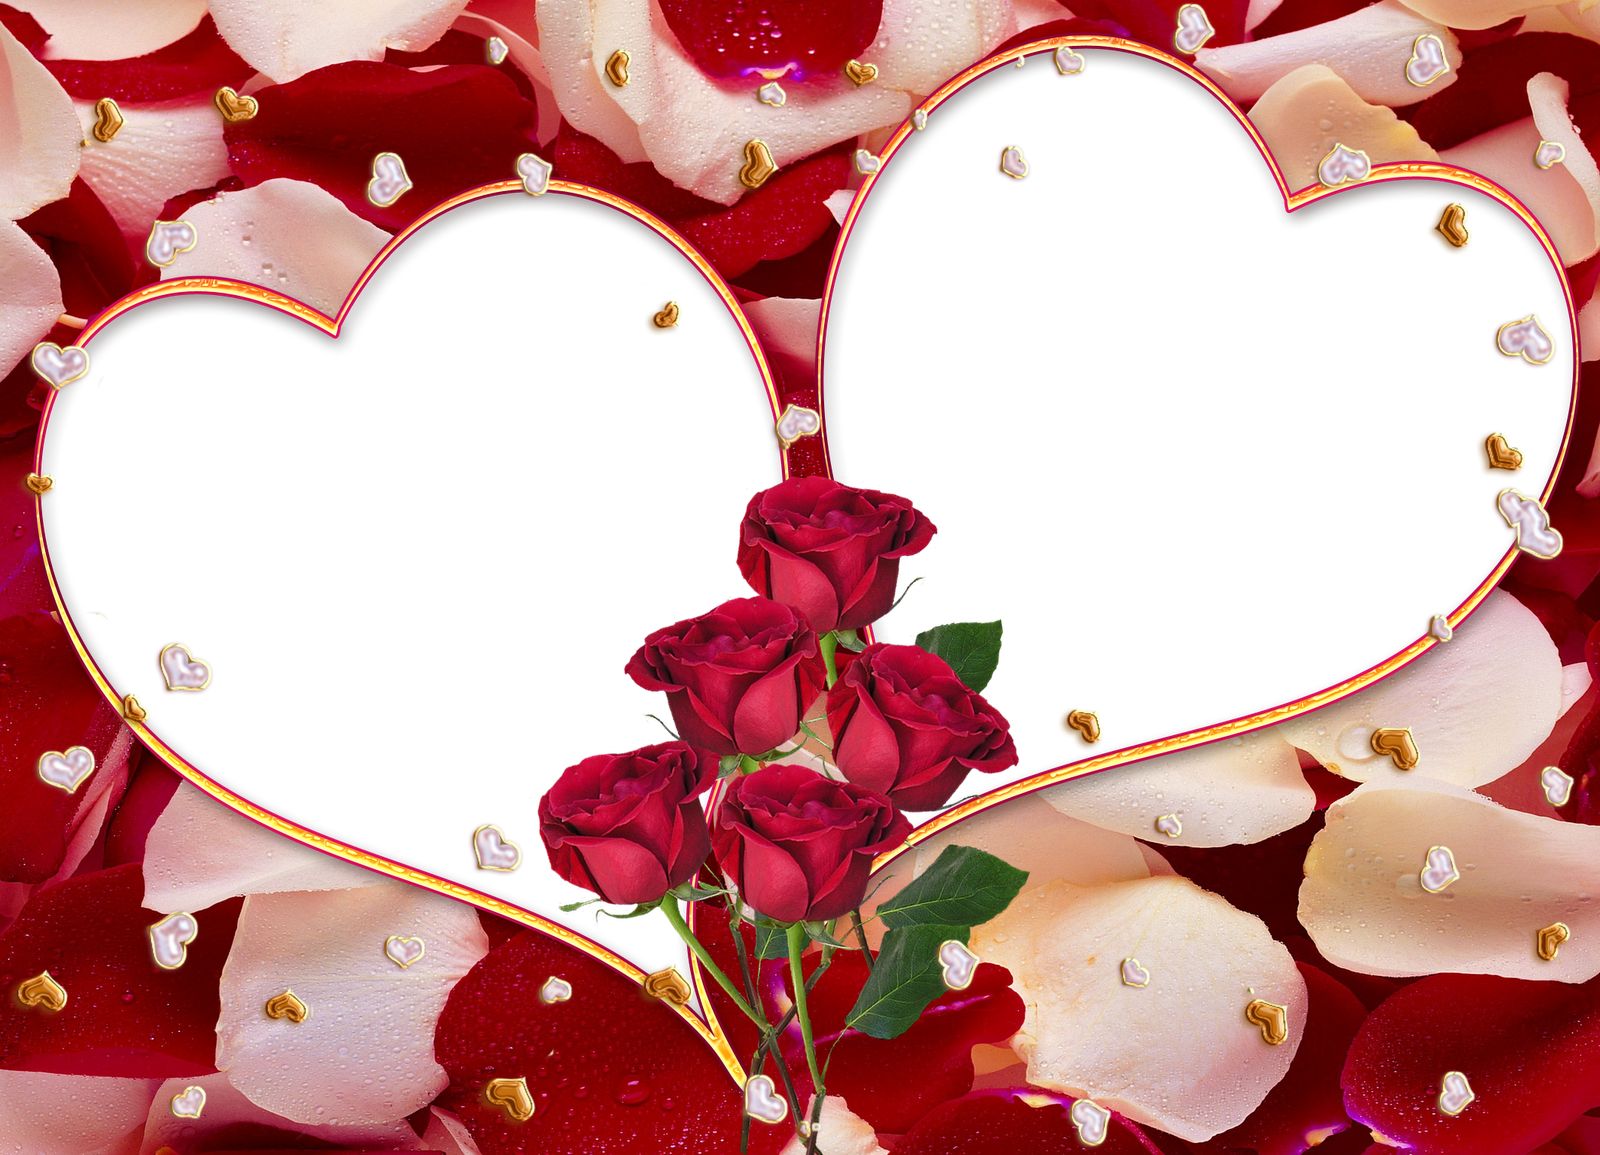 Pin By Mohamed Rashied On Bb Valentine Day Photo Frame Boarders And Frames Flowery Wallpaper